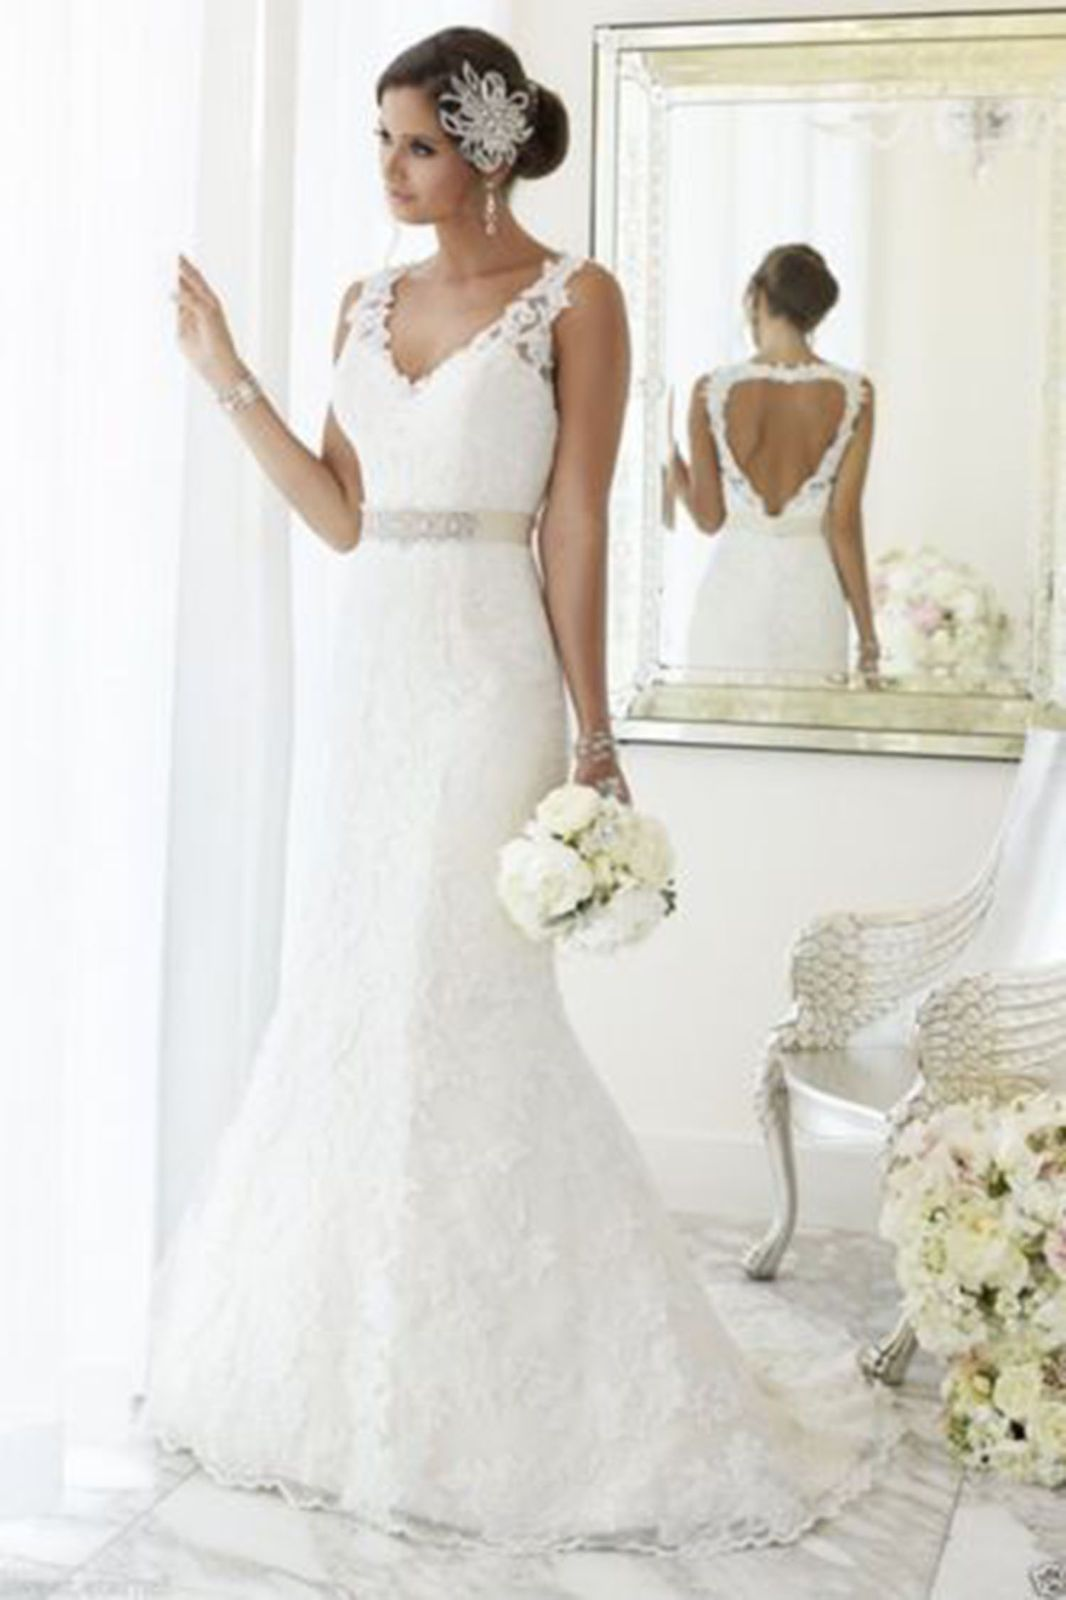 Size 6 wedding dress  Cool Mermaid WhiteIvory Lace Wedding dress Bridal Gown custom Size